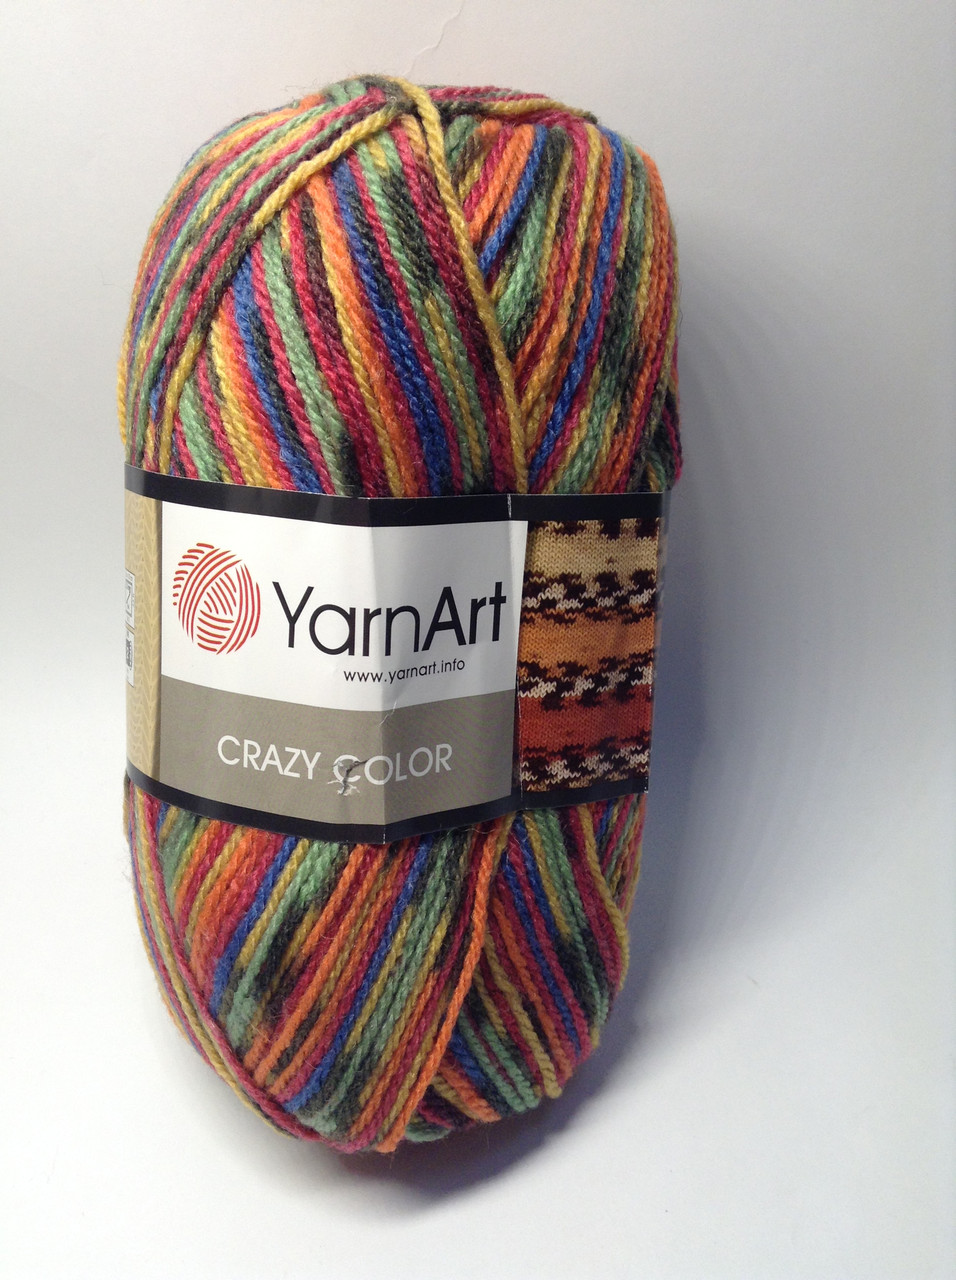 Пряжа Crazy color YarnArt (25% шерсть)